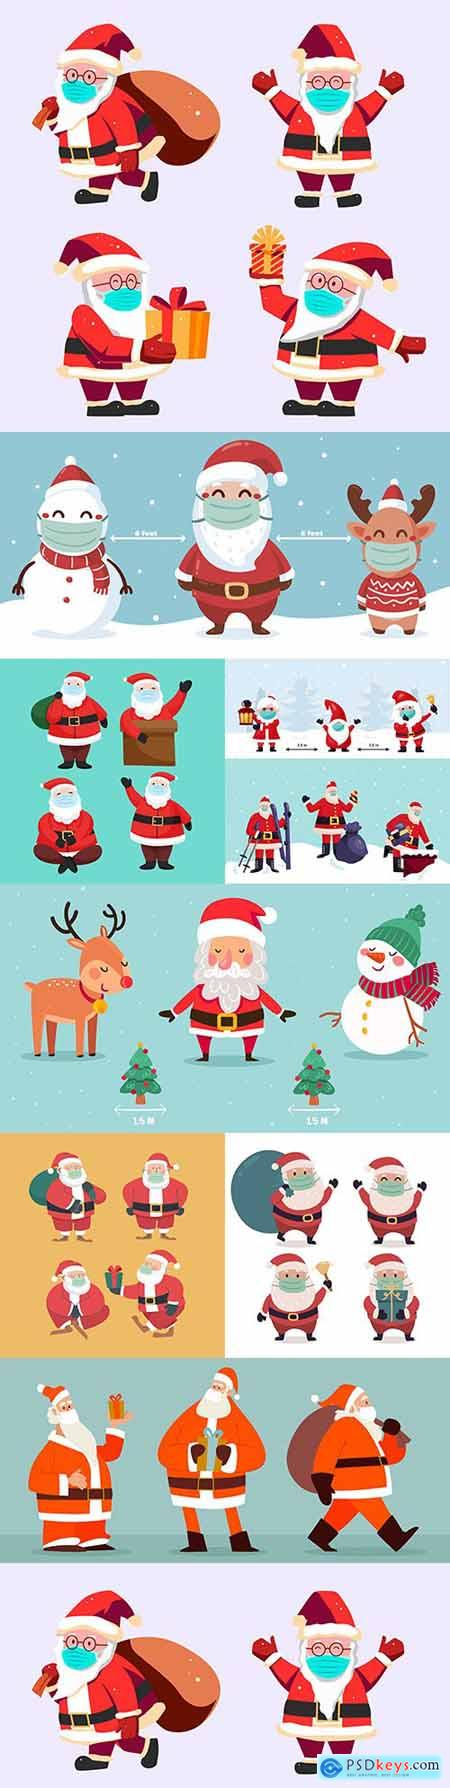 Santa Claus in social distancing mask with Christmas characters